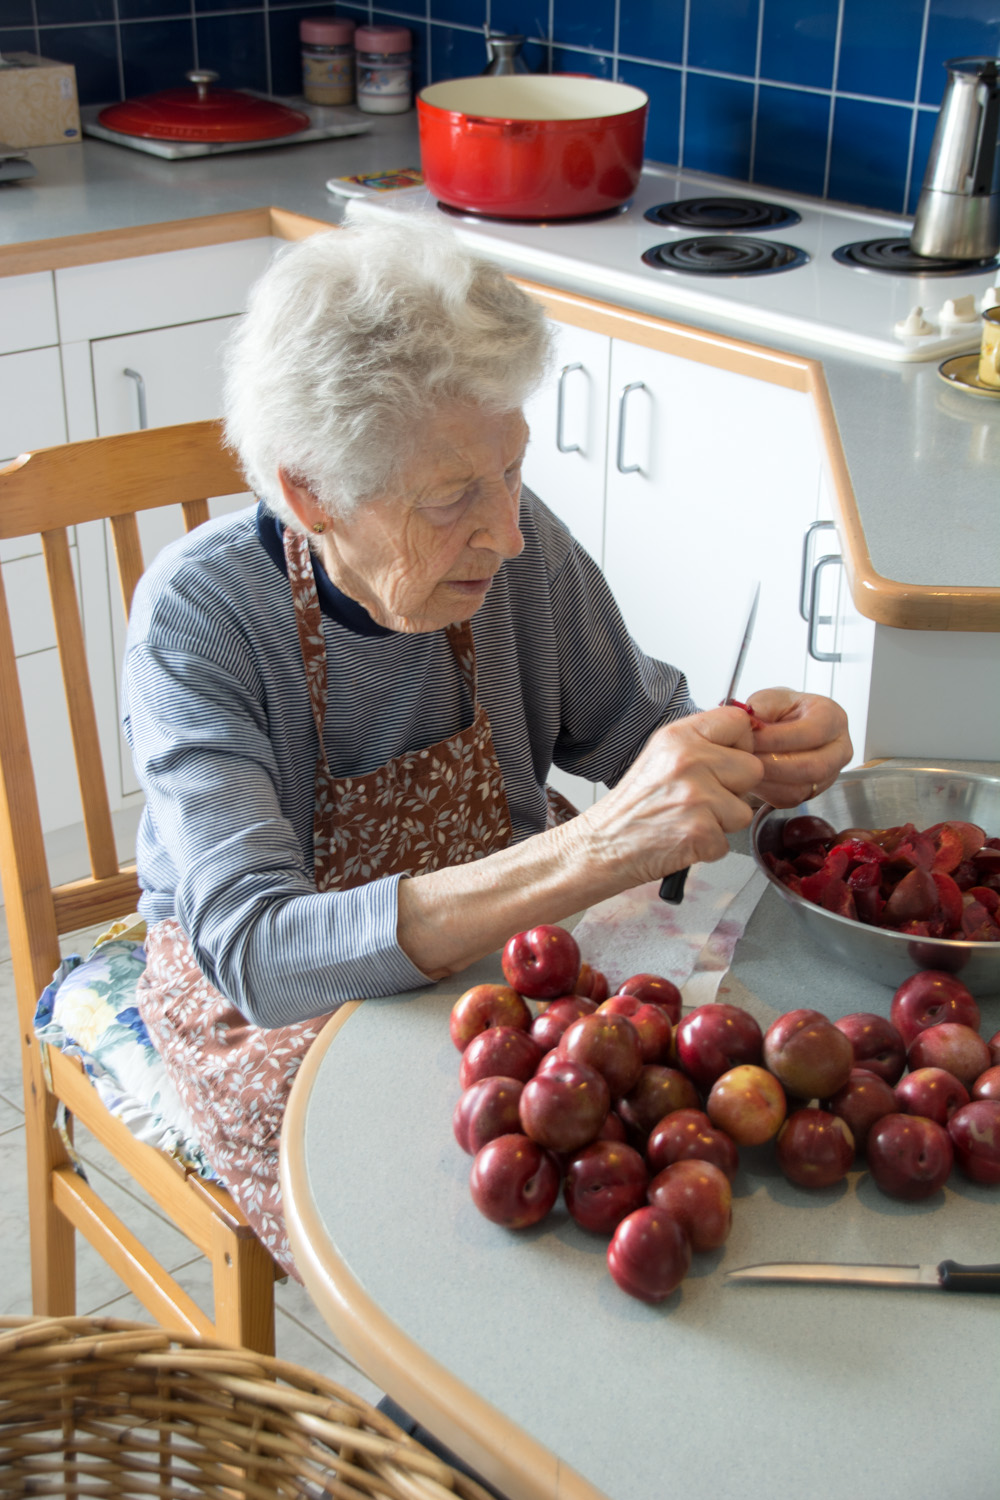 mamma cutting plums